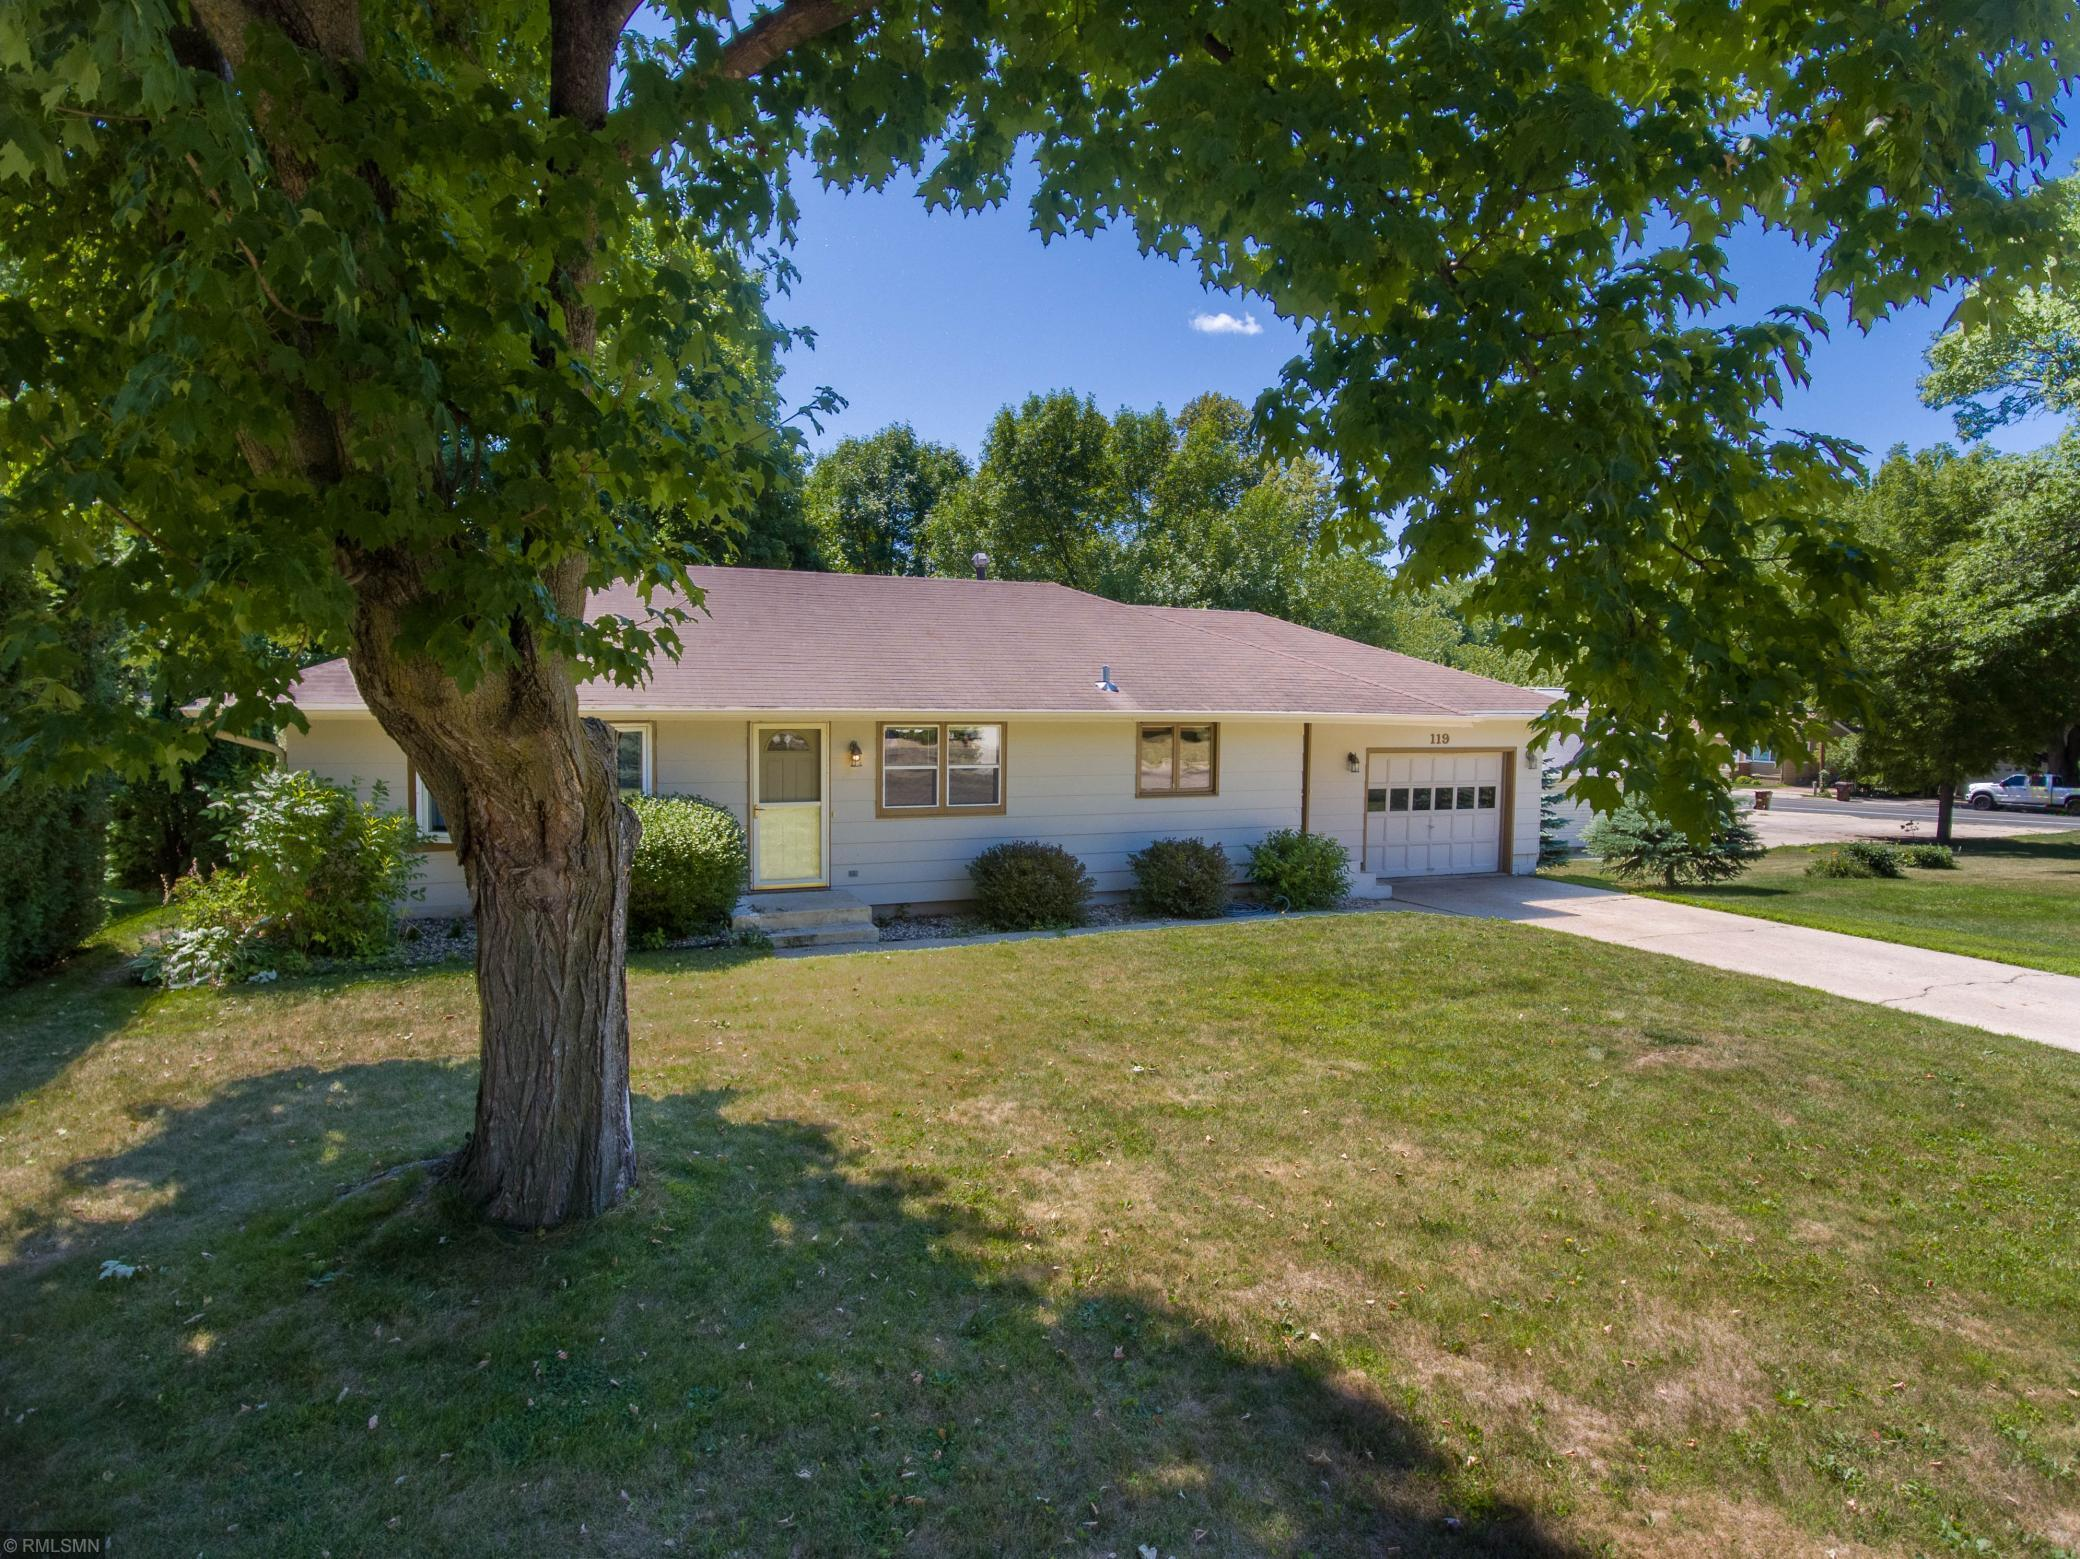 119 South Street E Property Photo - Norwood Young America, MN real estate listing